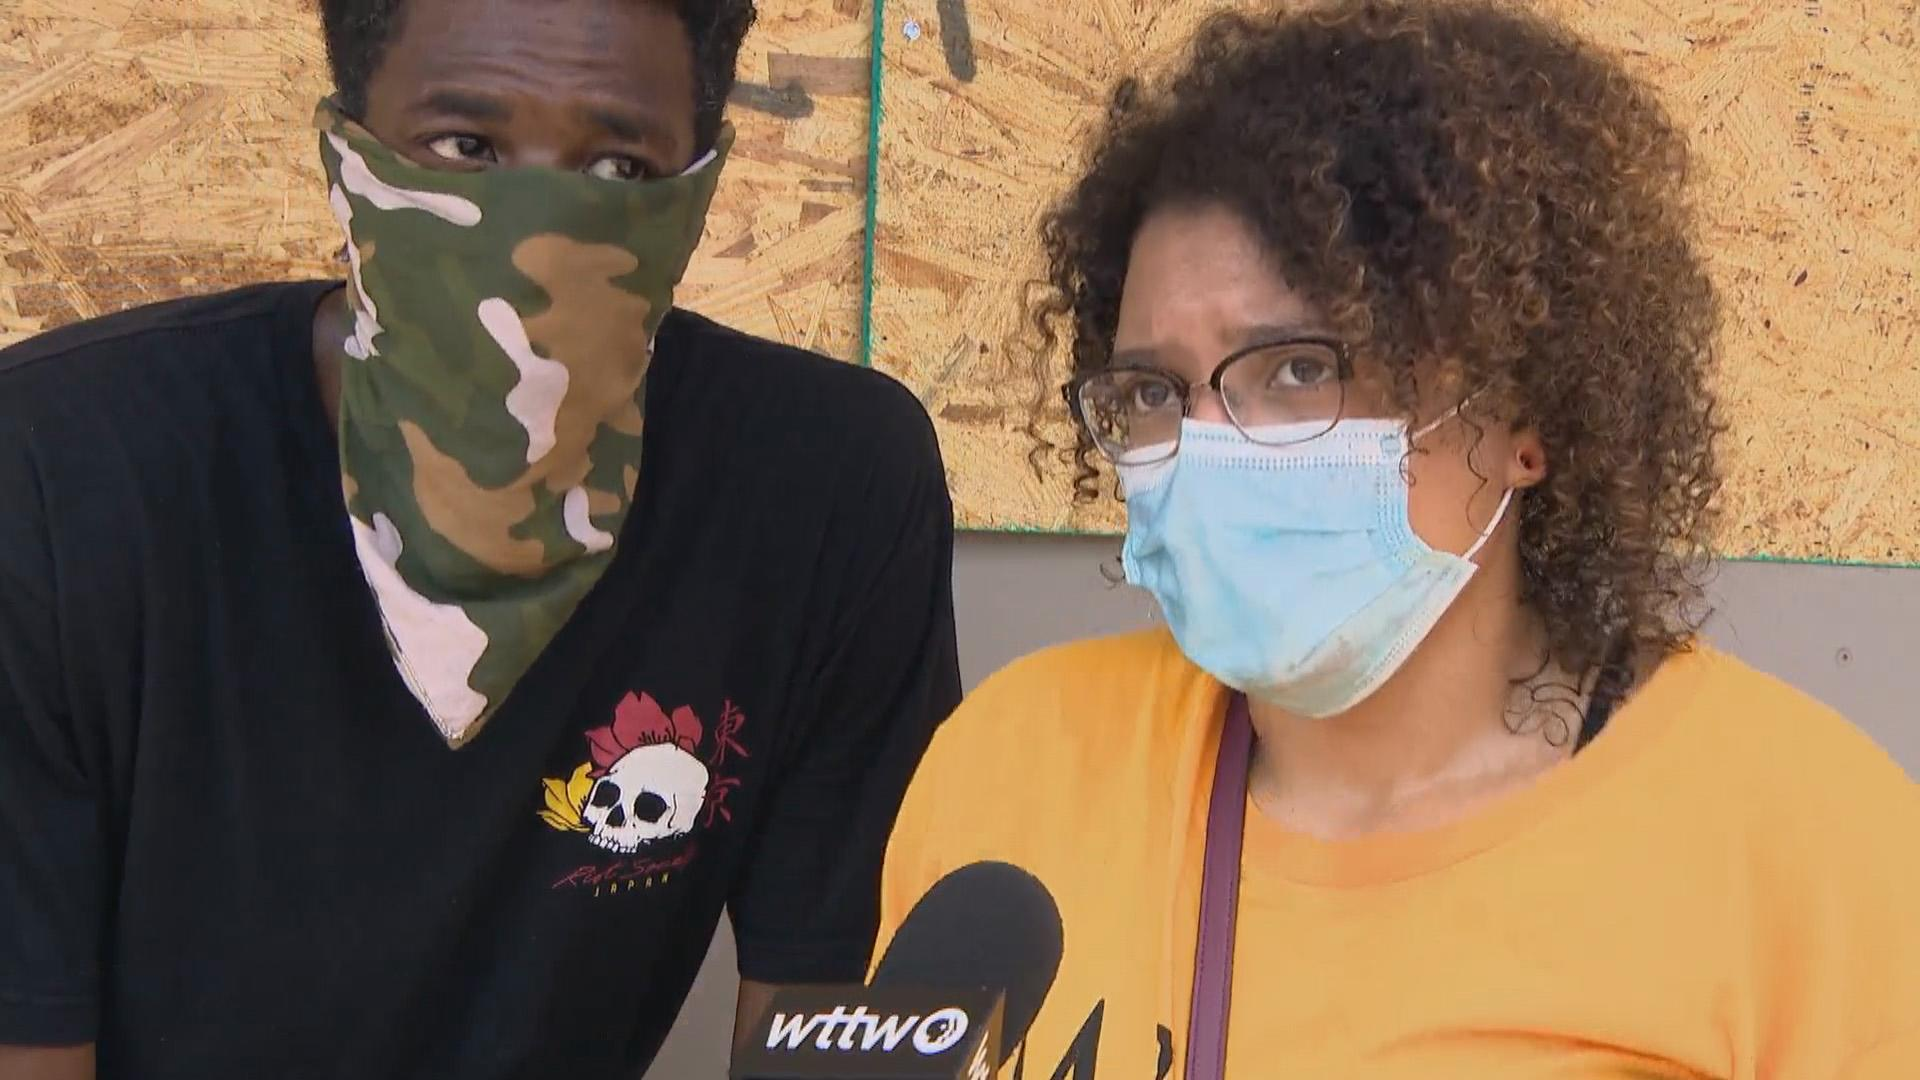 Kenosha residents and activists Brian Little and Diamond Hartwell speak with WTTW News on Thursday, Aug. 27, 2020. (WTTW News)